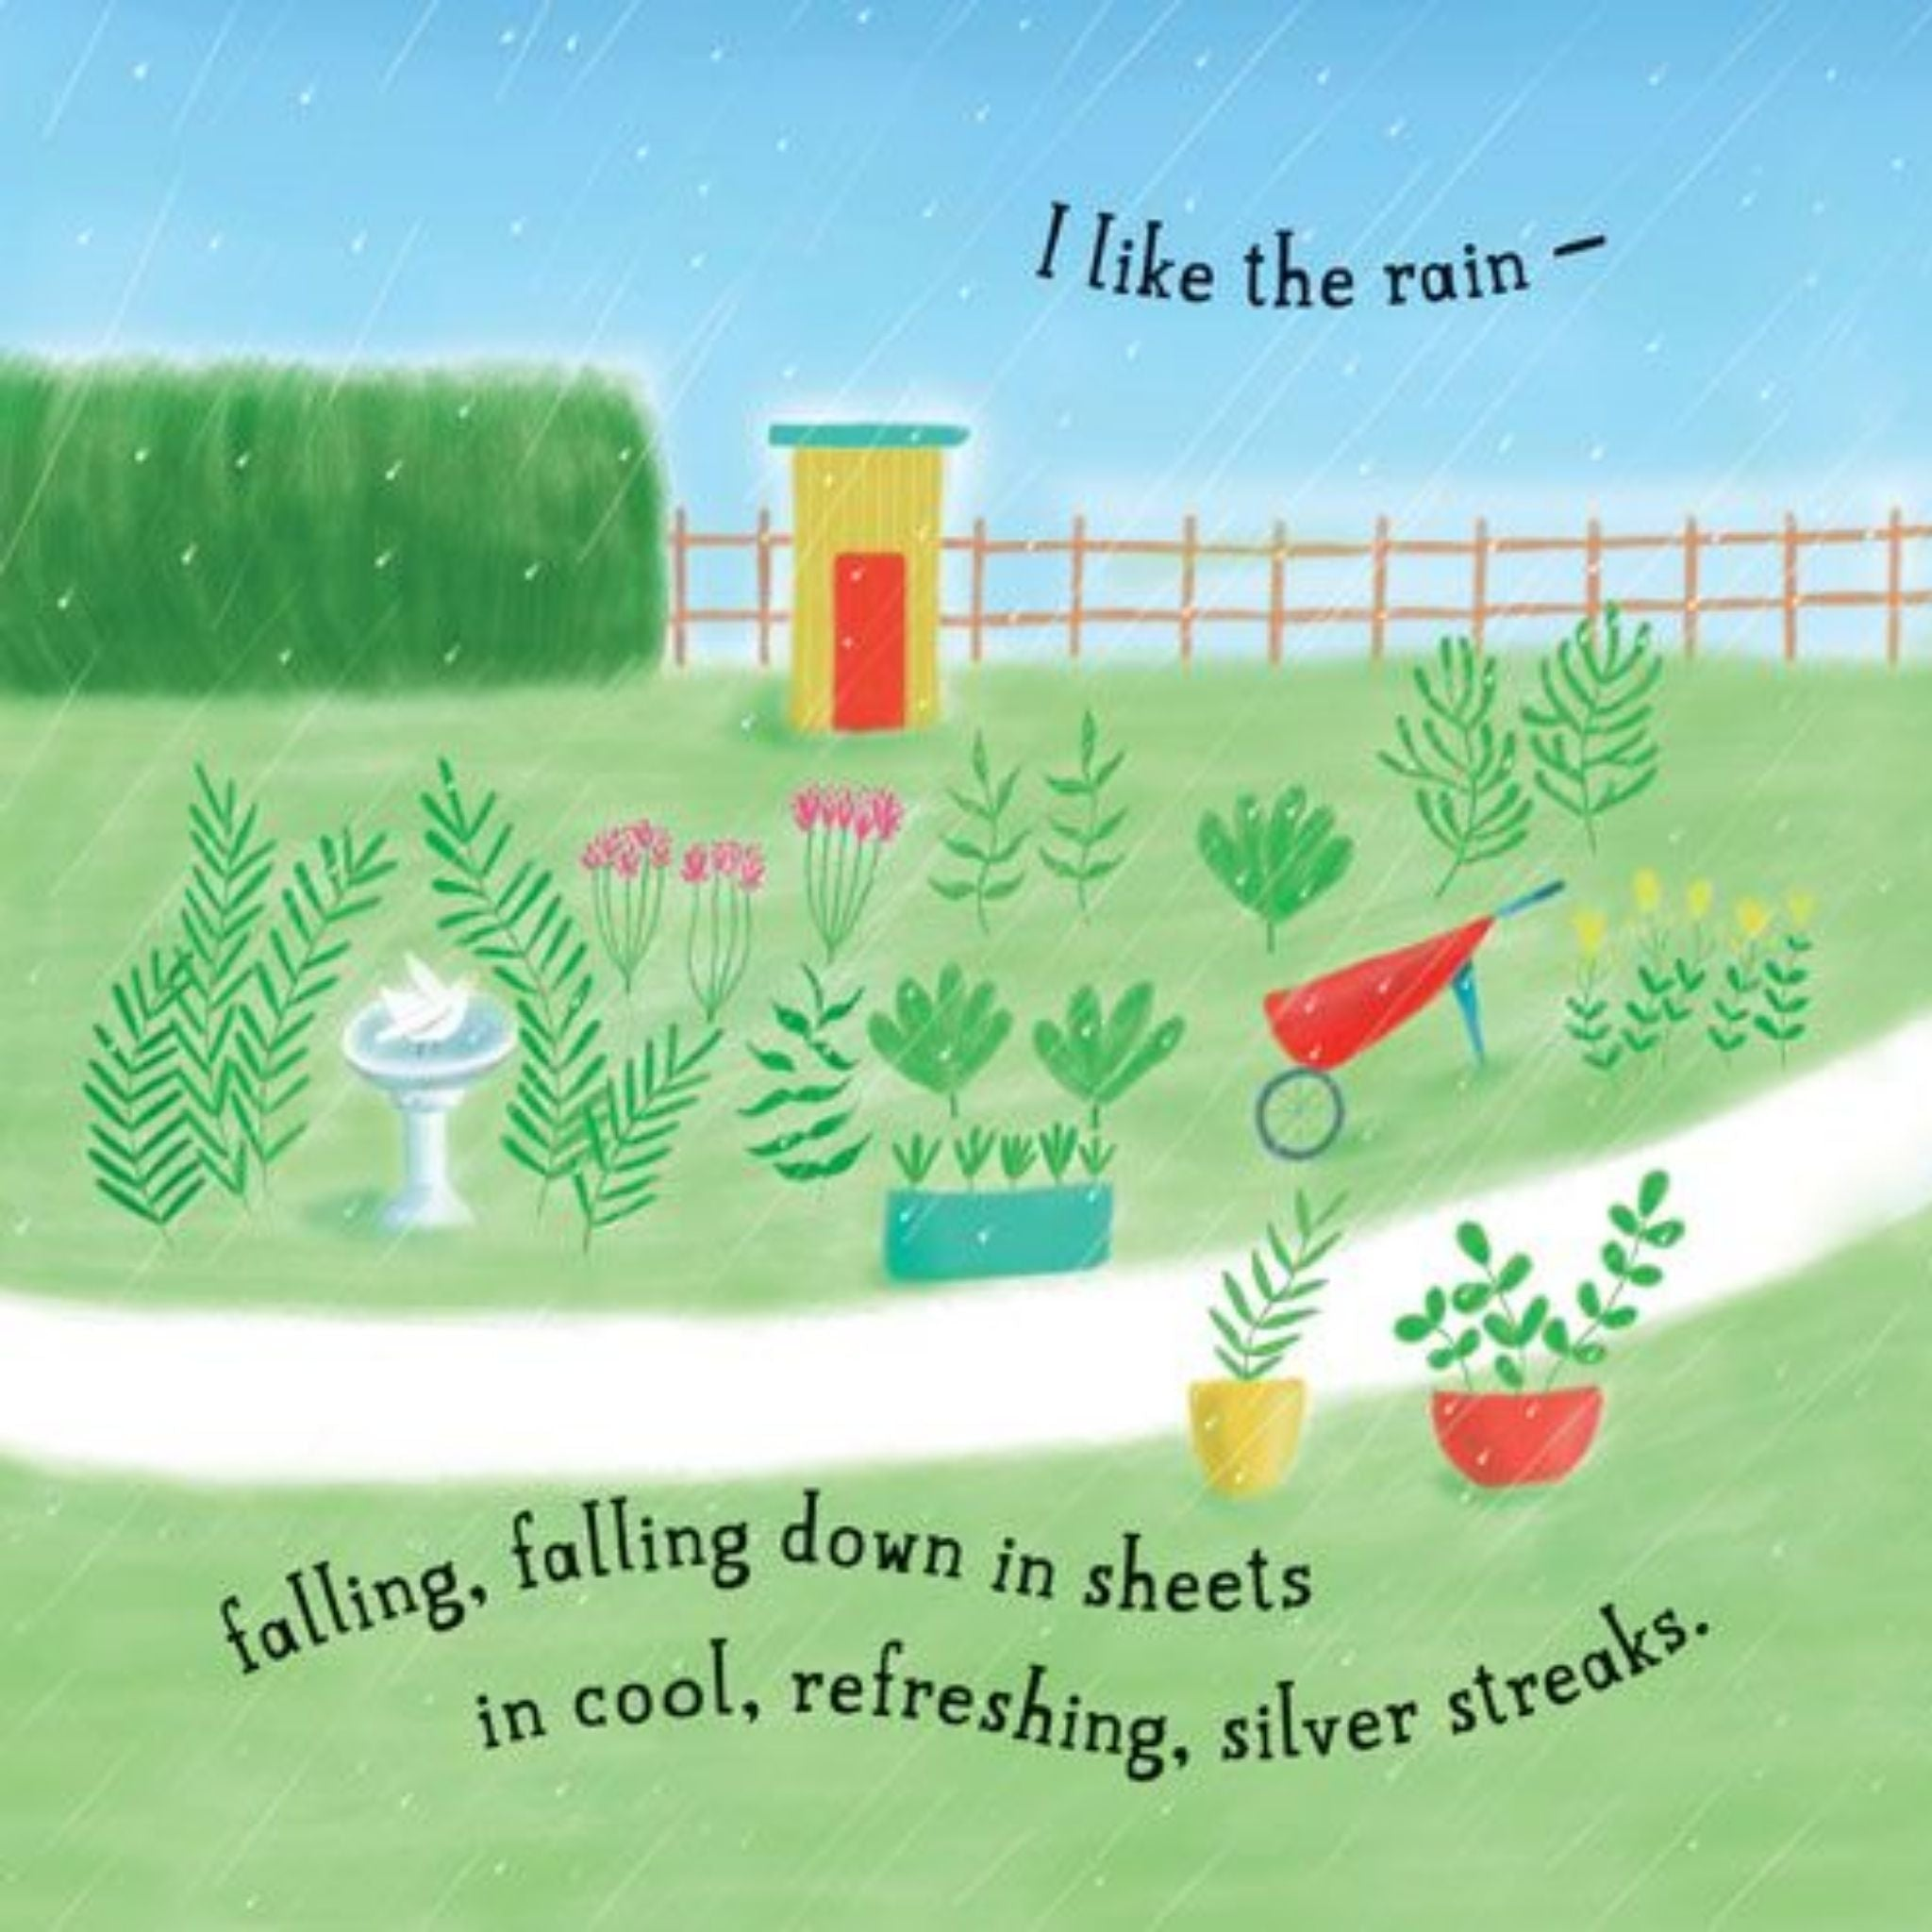 "i like the rain inside, text reads ""I like the rain - falling, falling down in sheets in cool, refreshing, silver streaks."" page shows rain in a garden"